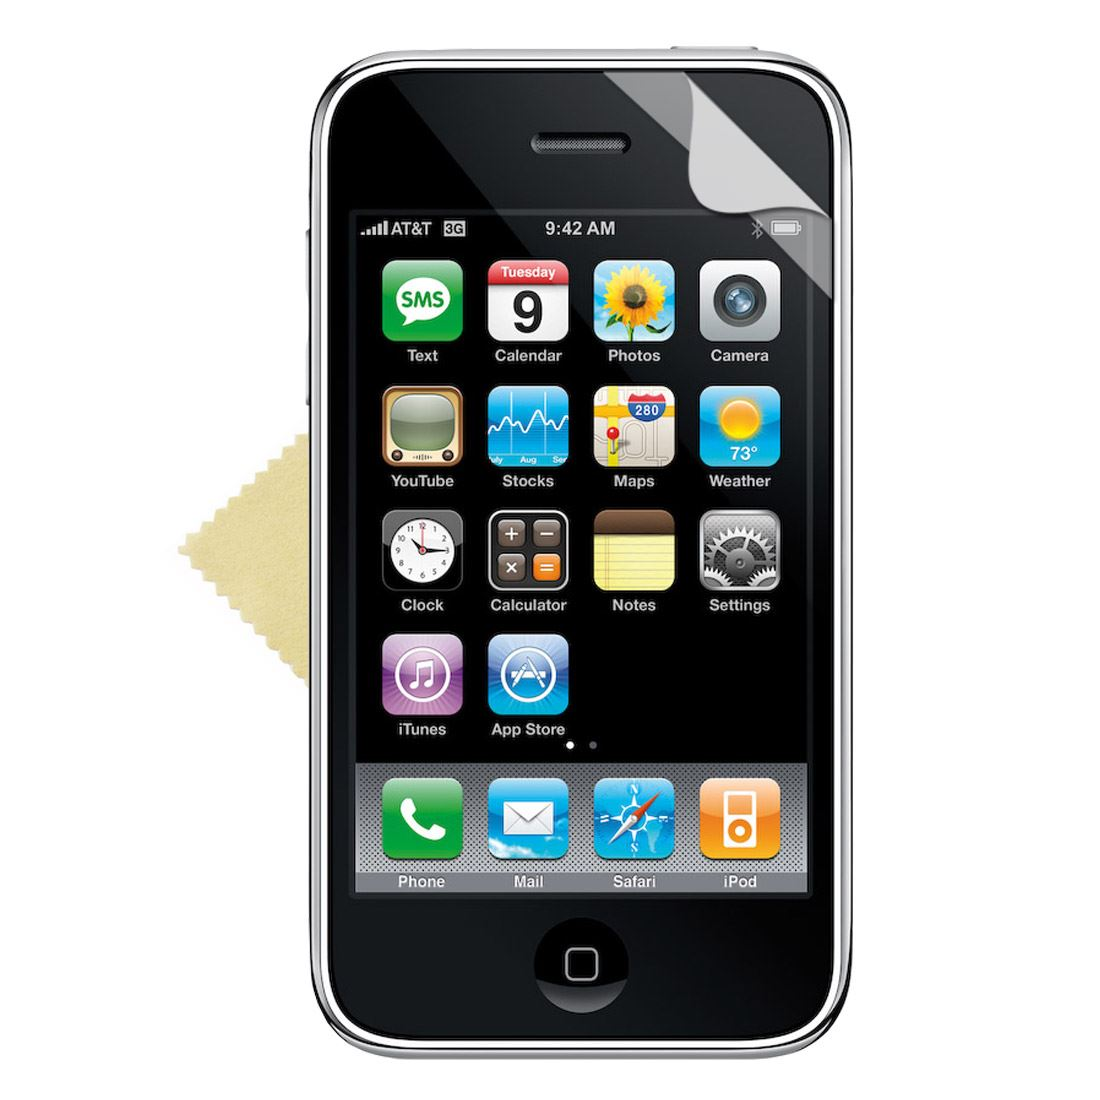 10x-CLEAR-SCREEN-PROTECTOR-FOR-APPLE-iPhone3G-3GS